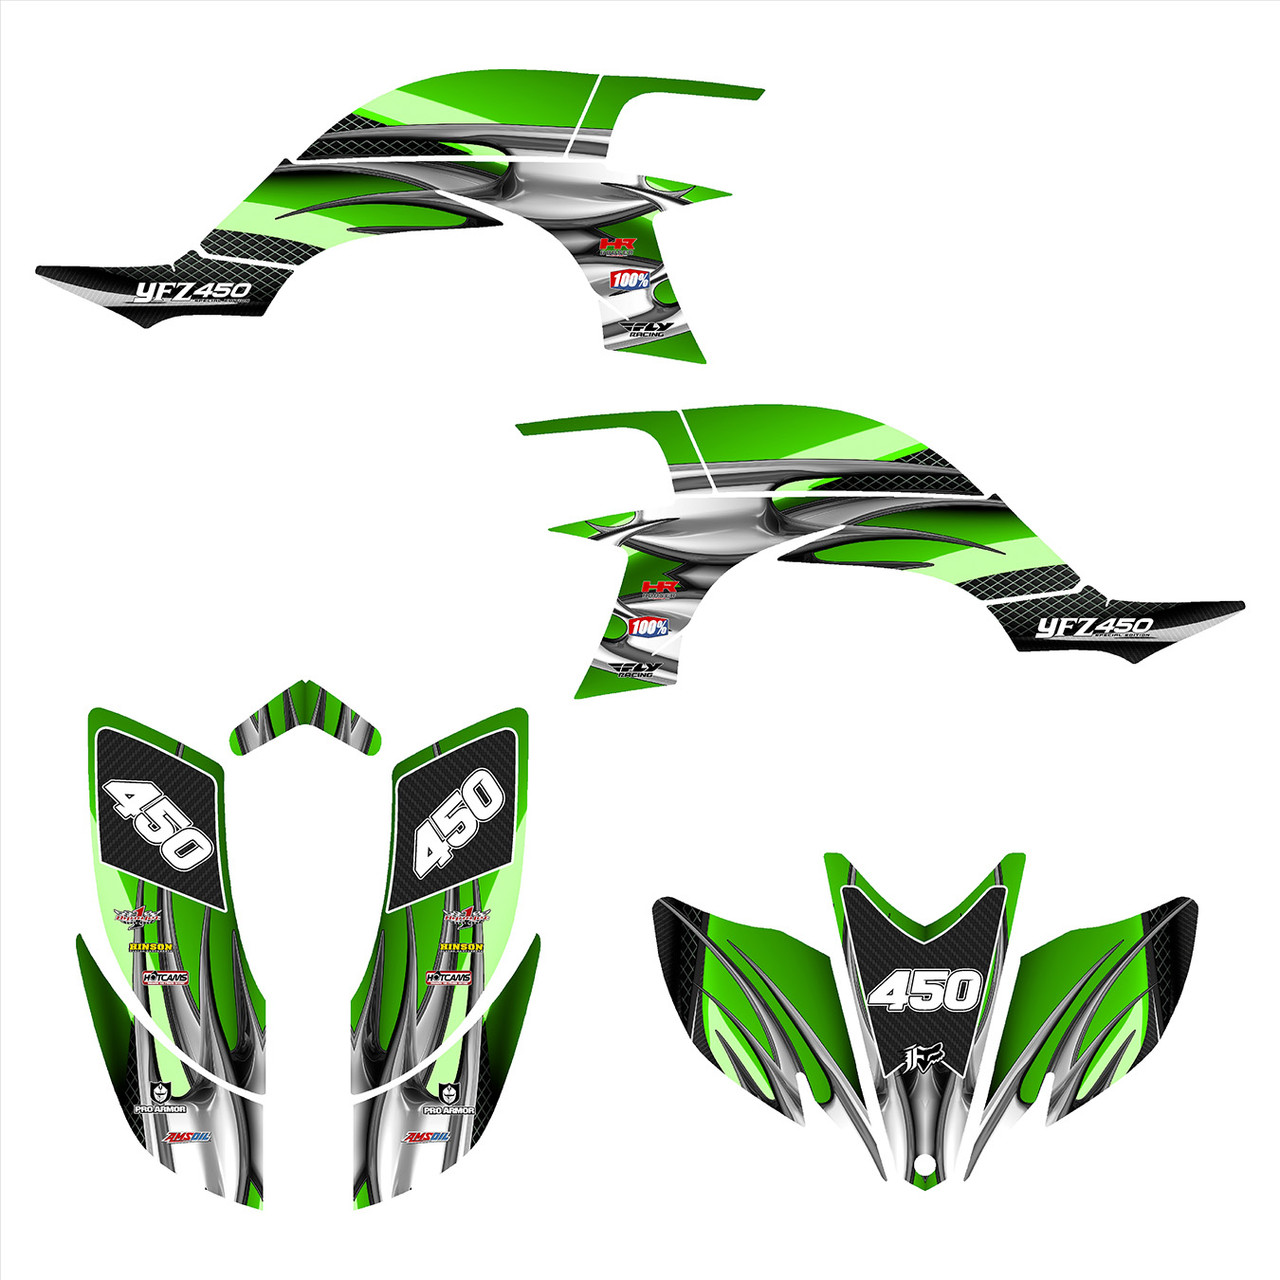 2007 Yamaha YFZ 450 graphics decal kit